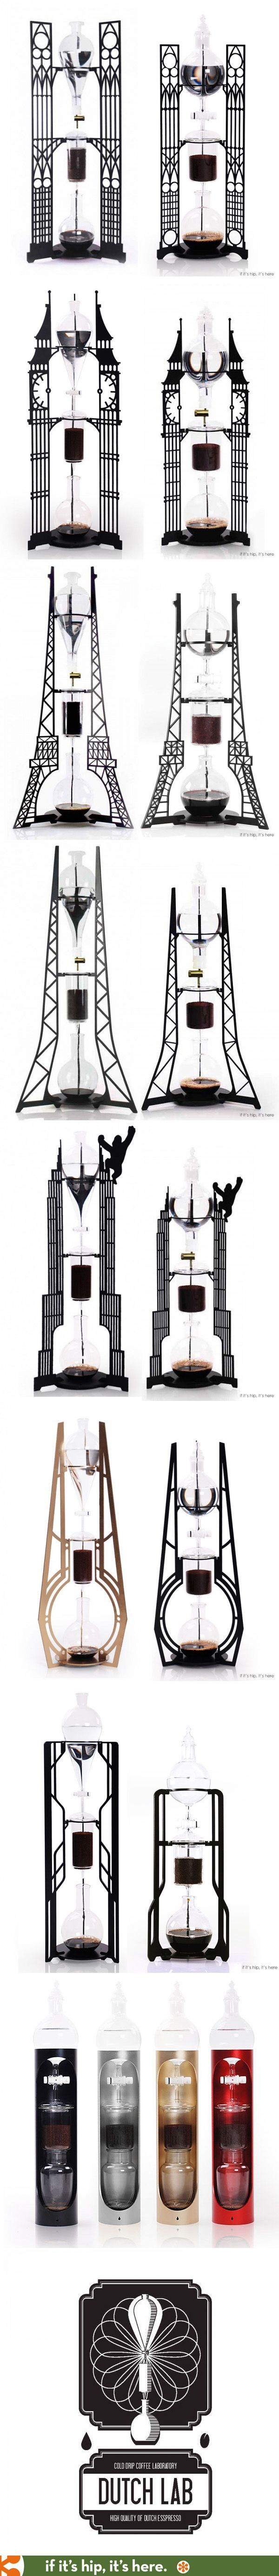 Cold drip brew tower